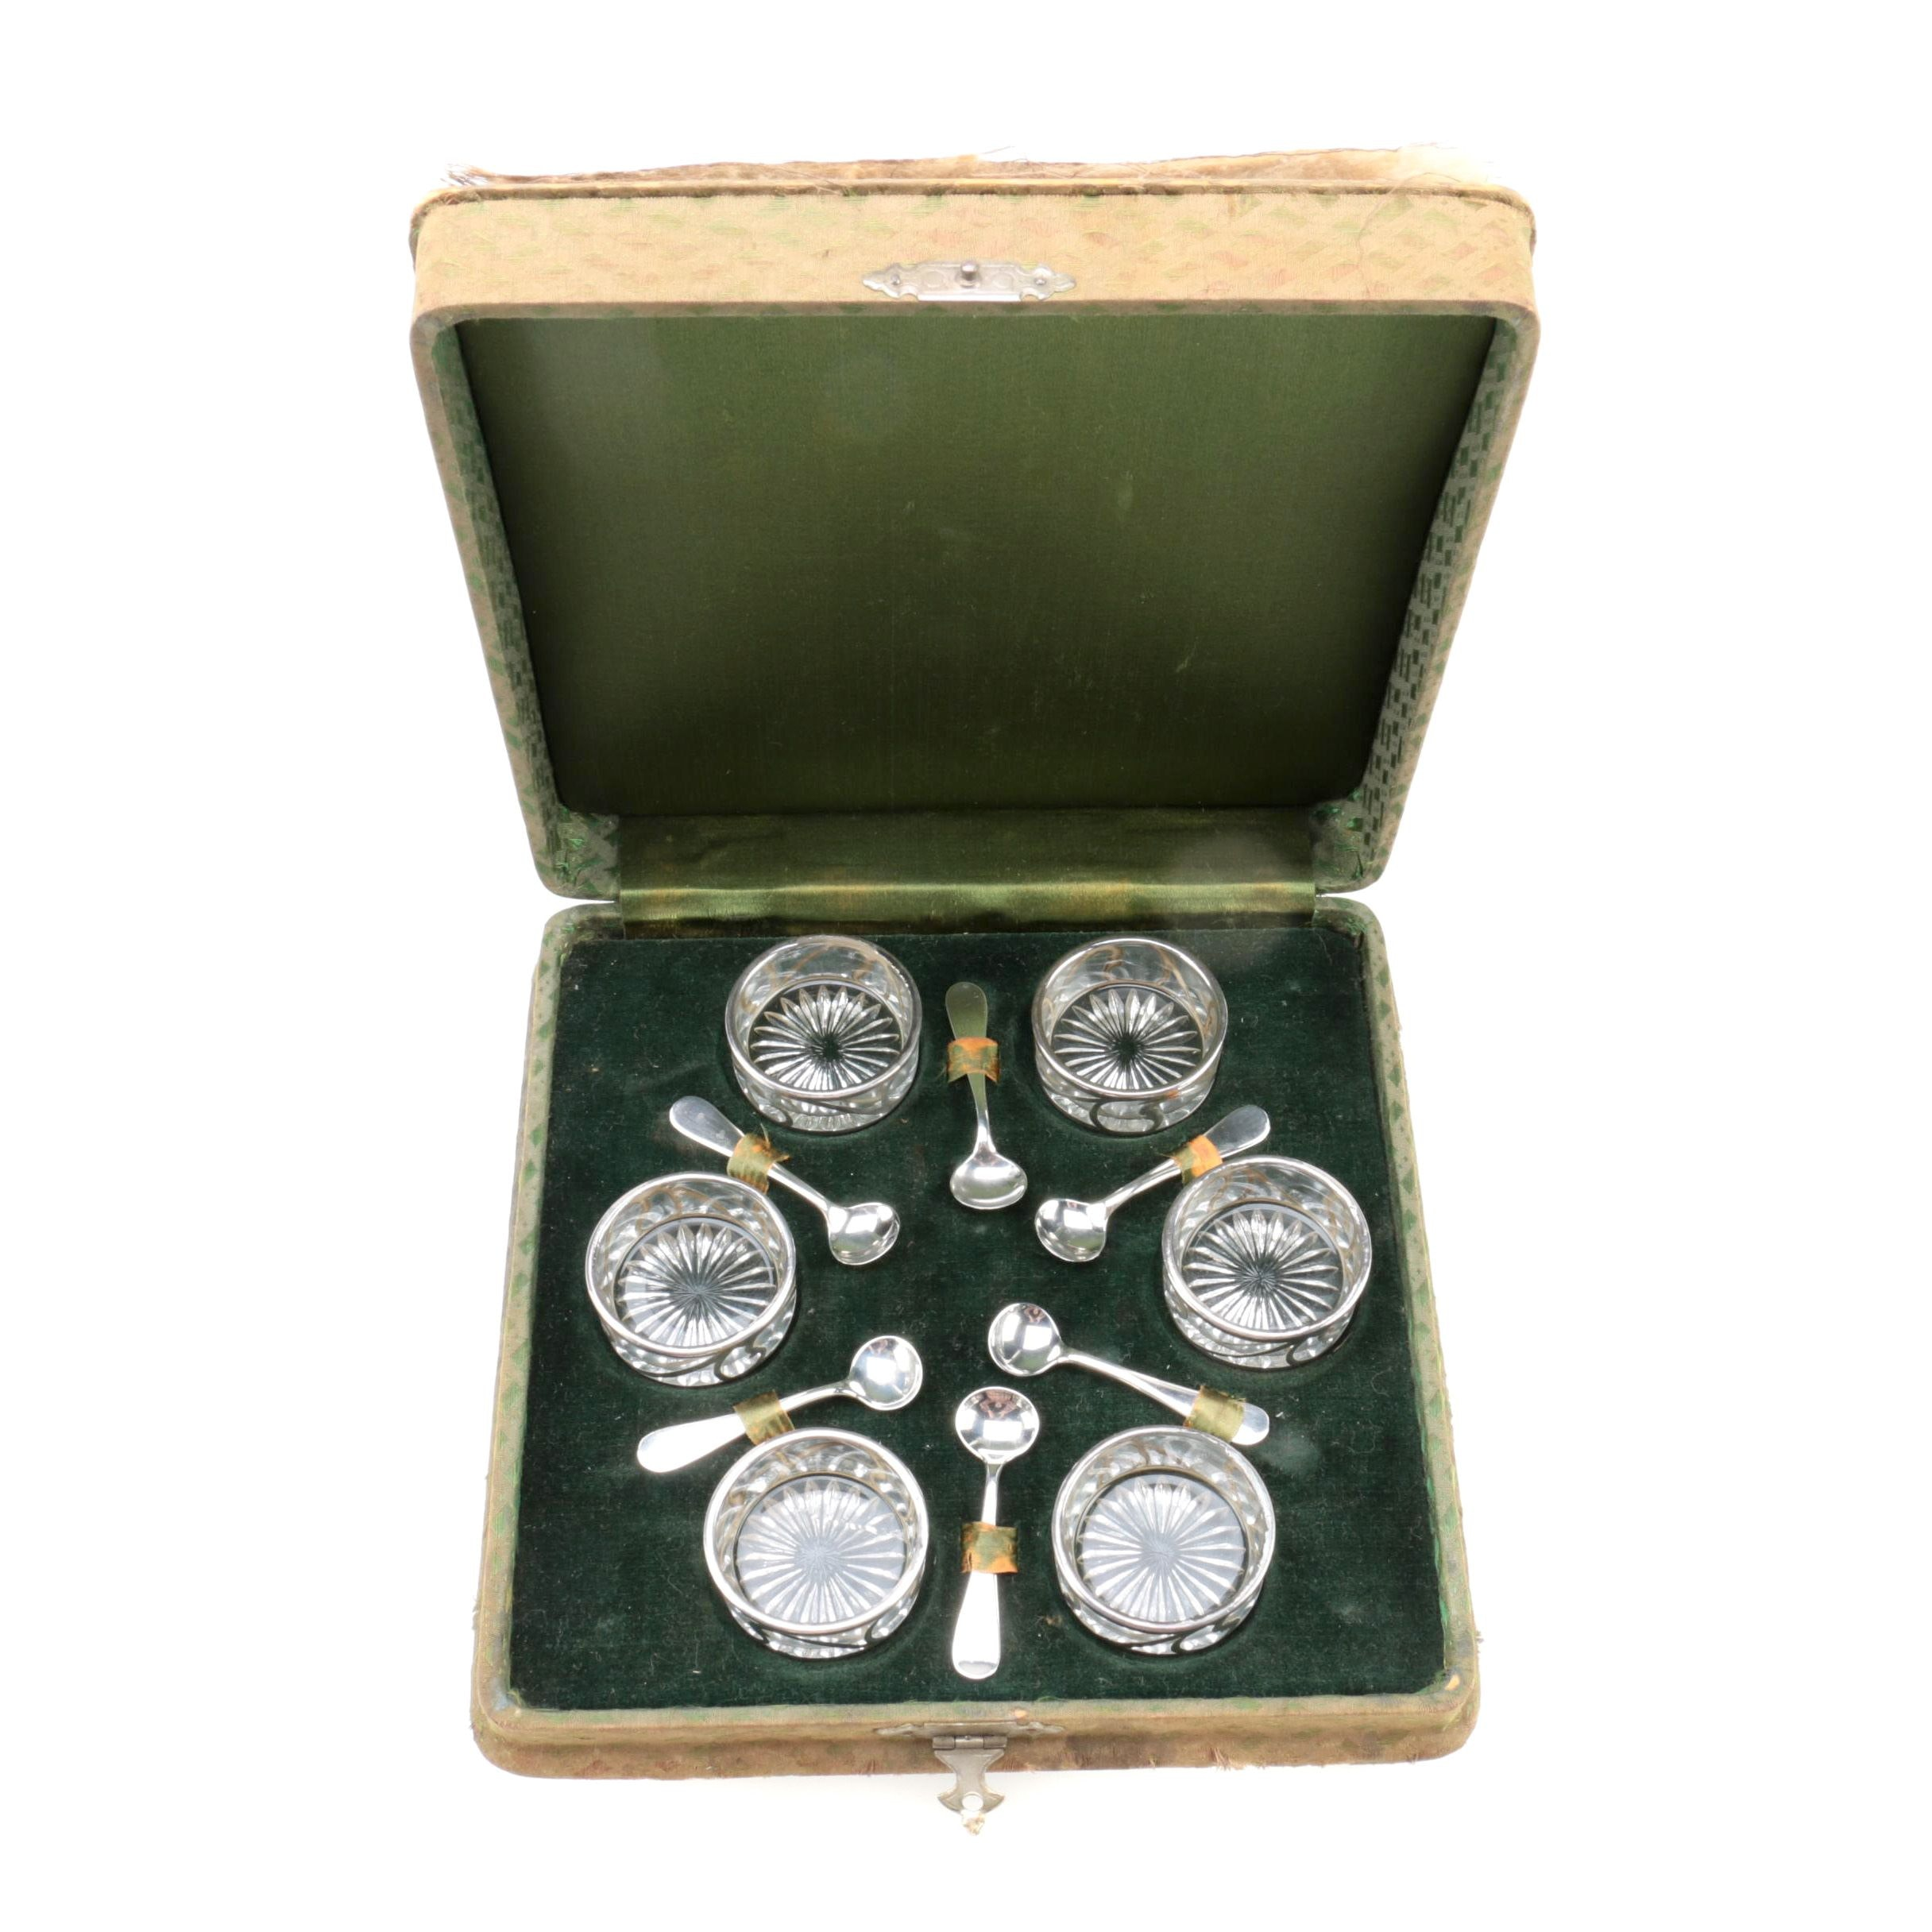 Alvin Manufacturing Co. Sterling Silver and Glass Salt Cellars and Spoons